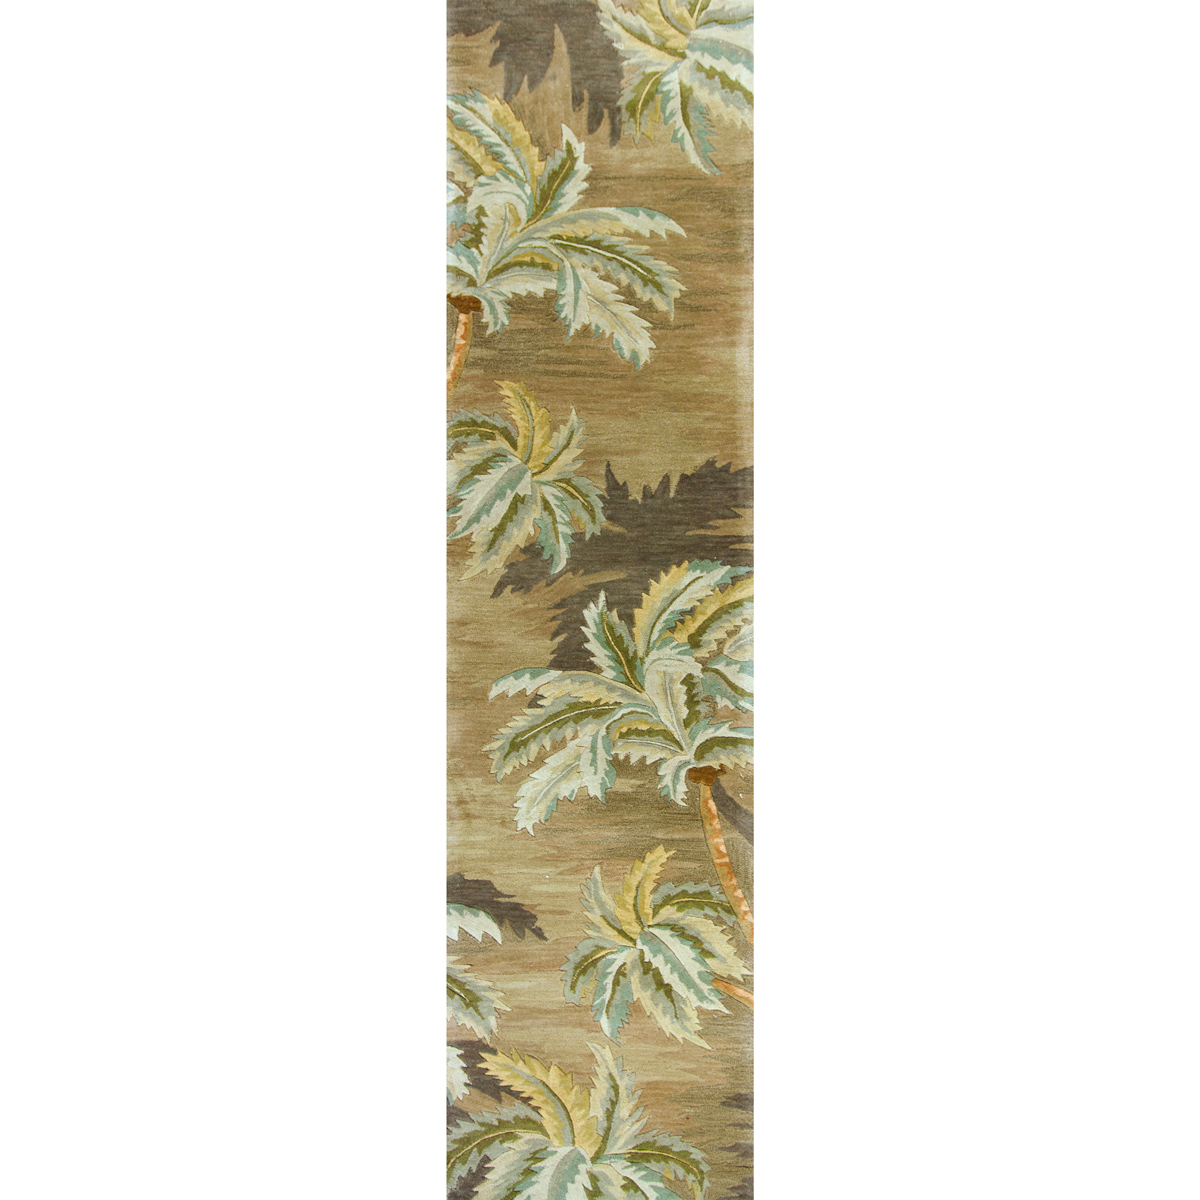 Sparta Moss Palm Trees Rug - 3 x 10